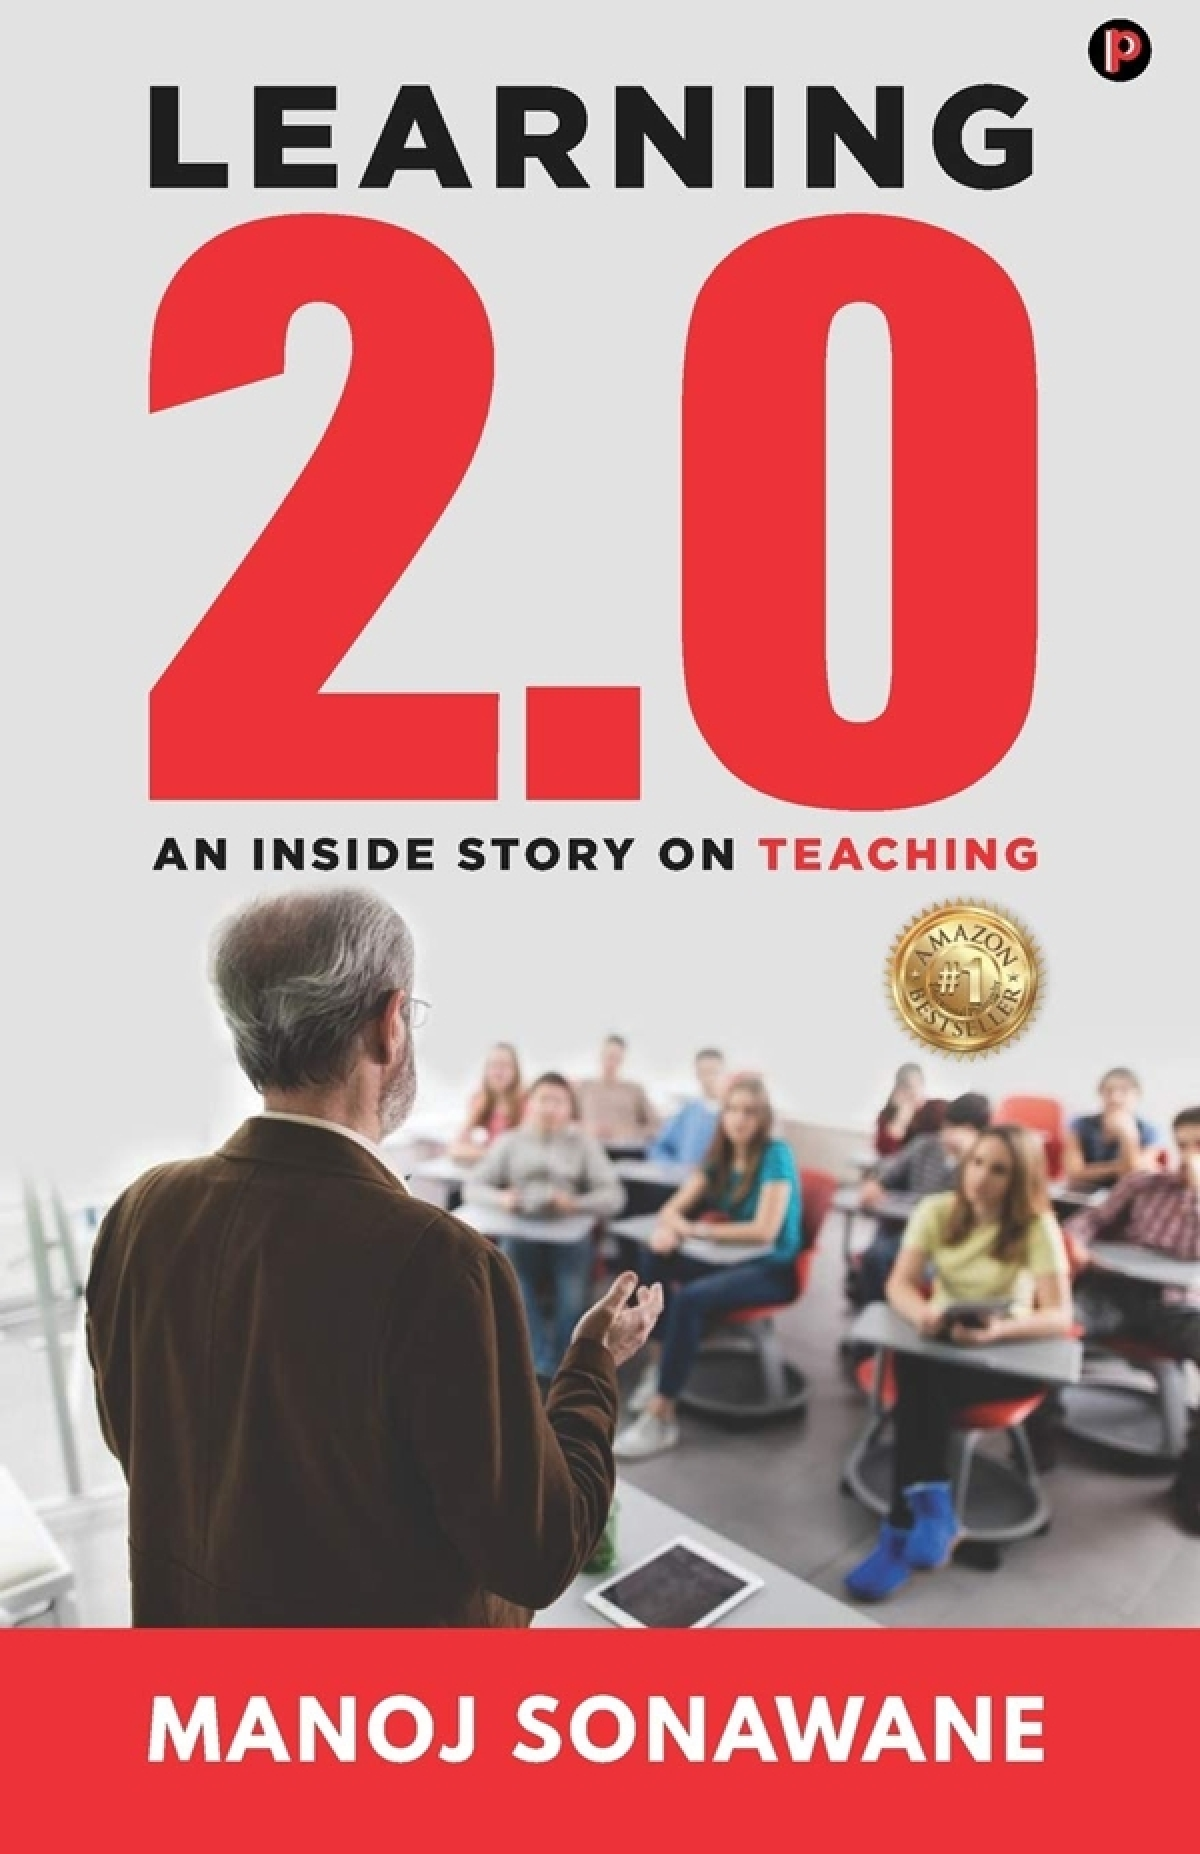 Book Review: Lots to learn from it